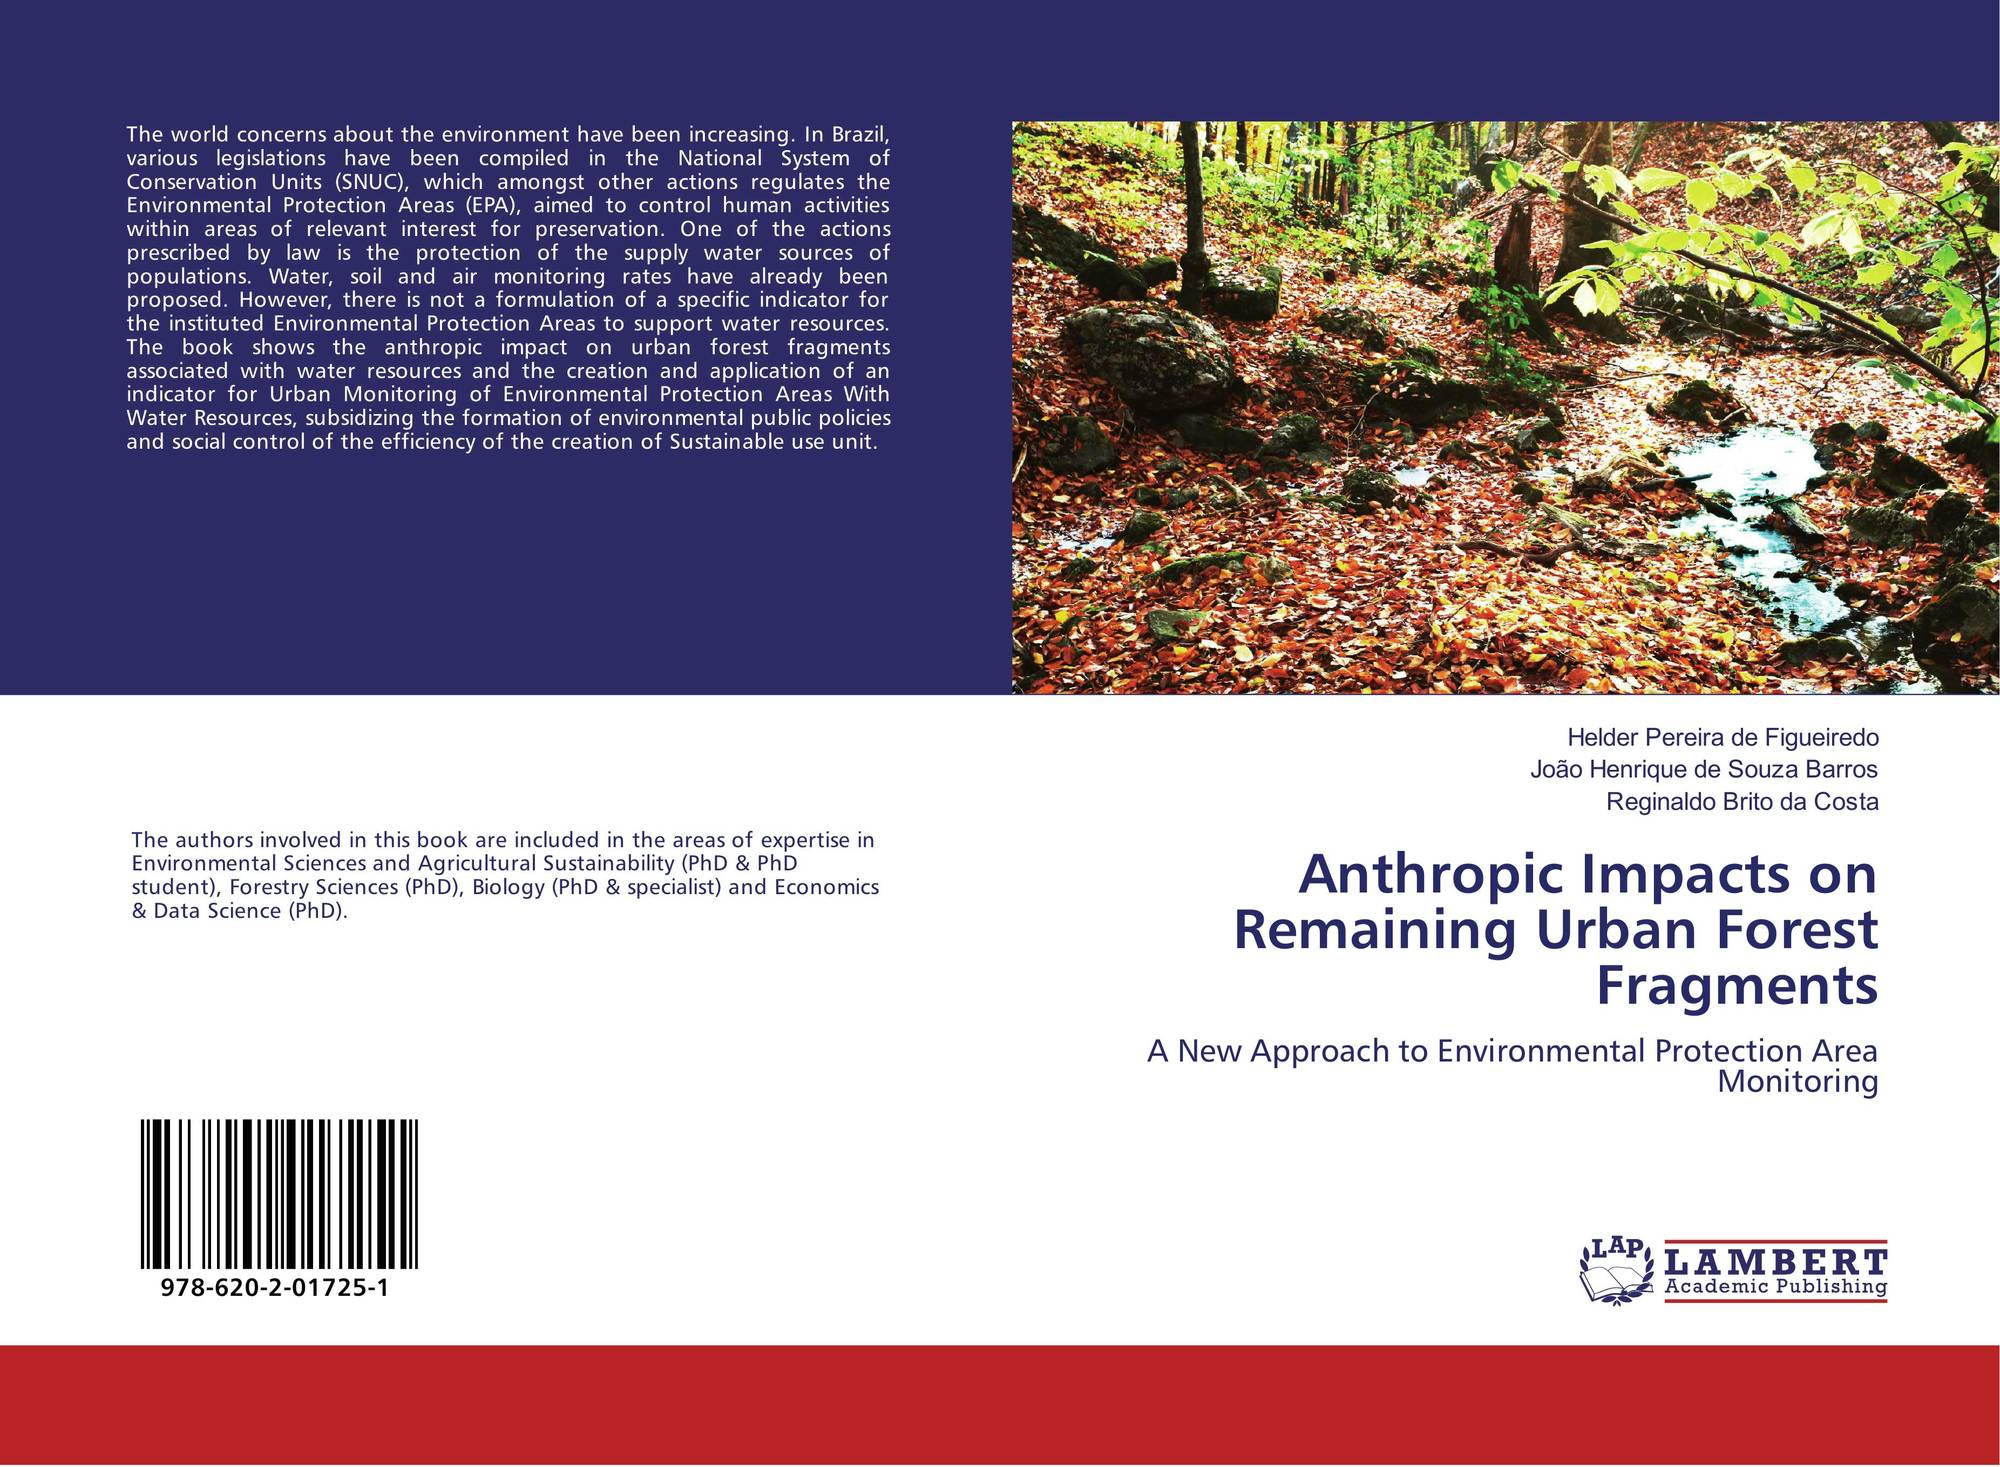 urbanizations impact on forest area in kelantan environmental sciences essay Frostburg, md, oct 2, 2013 -- a new method to better discern where streams begin has been developed by researchers from the university of maryland center for environmental science, resulting in a new map of the potomac river watershed stream network that significantly improves the information needed for assessing the impact of urbanization on.